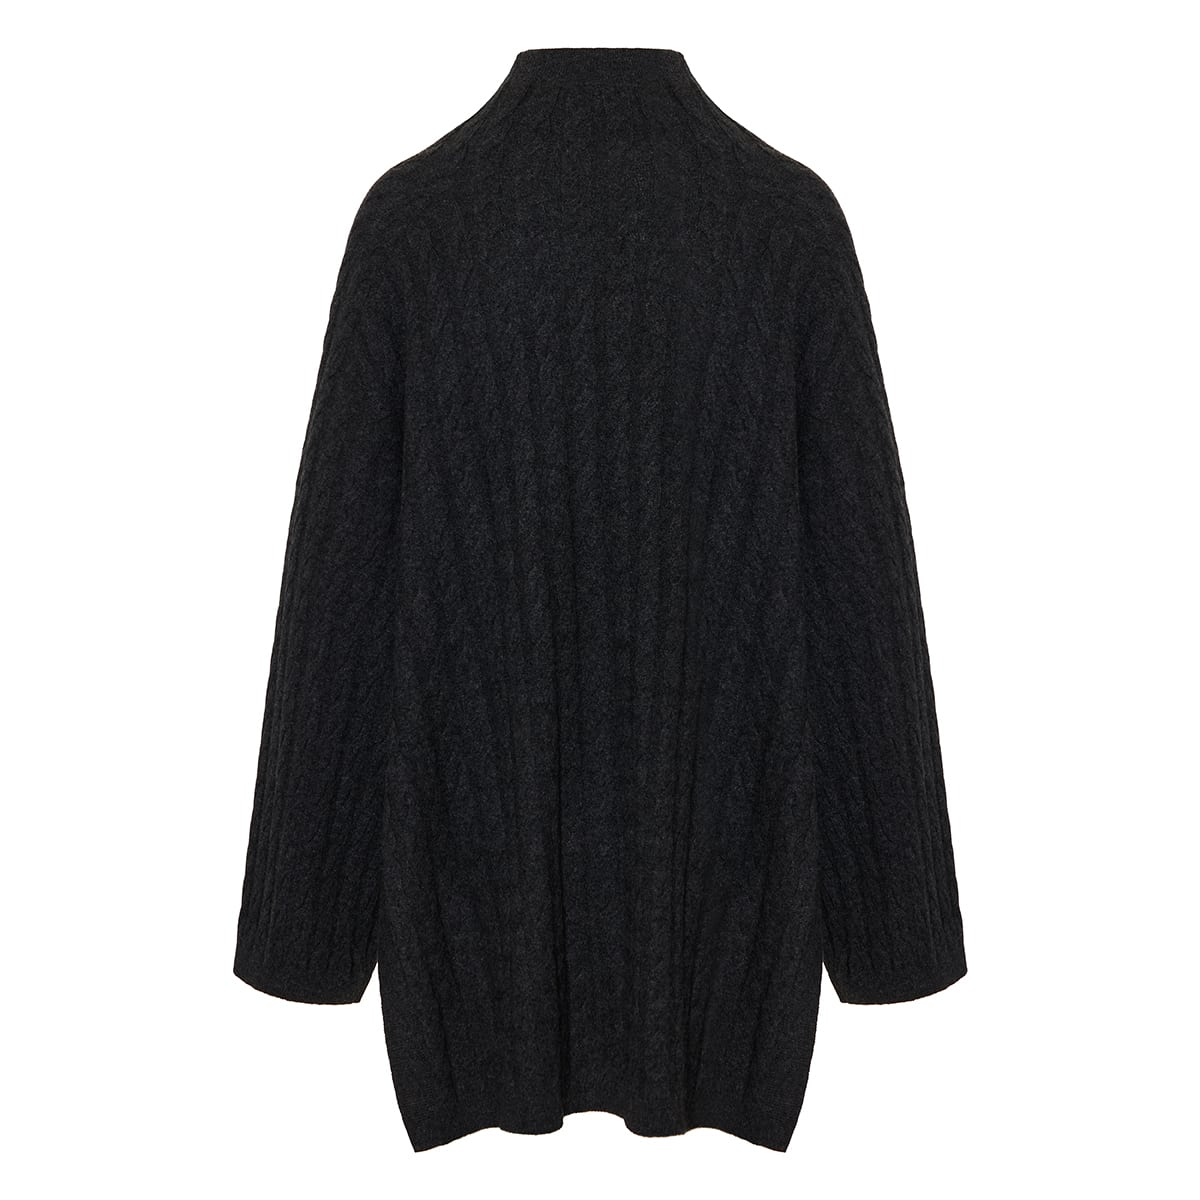 Long cable-knit cashmere sweater